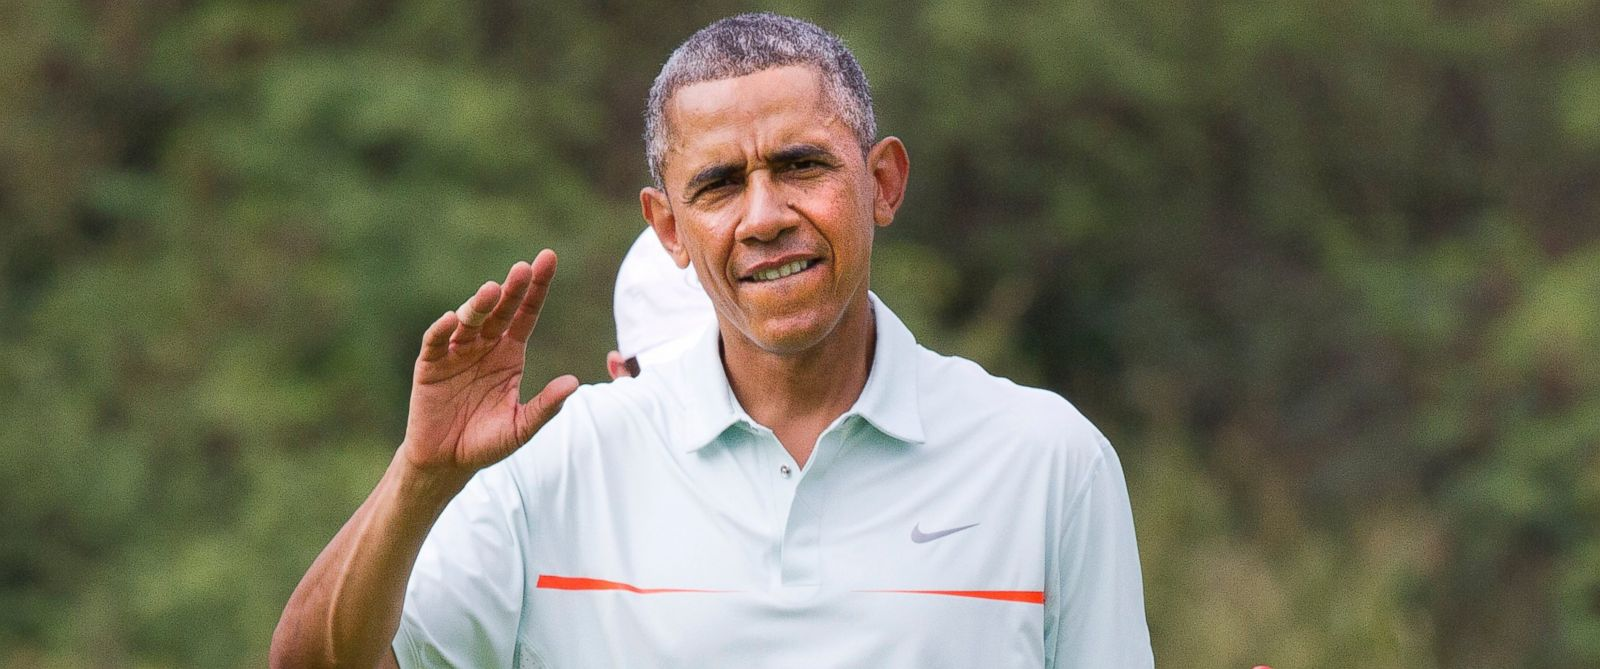 President Obama waves to the traveling press as he plays golf with Malaysian Prime Minister Najib Razak Wednesday, Dec. 24, 2014, at Marine Corps Base Hawaiis Kaneohe Klipper Golf Course in Kaneohe, Hawaii, during the Obama family vacation.